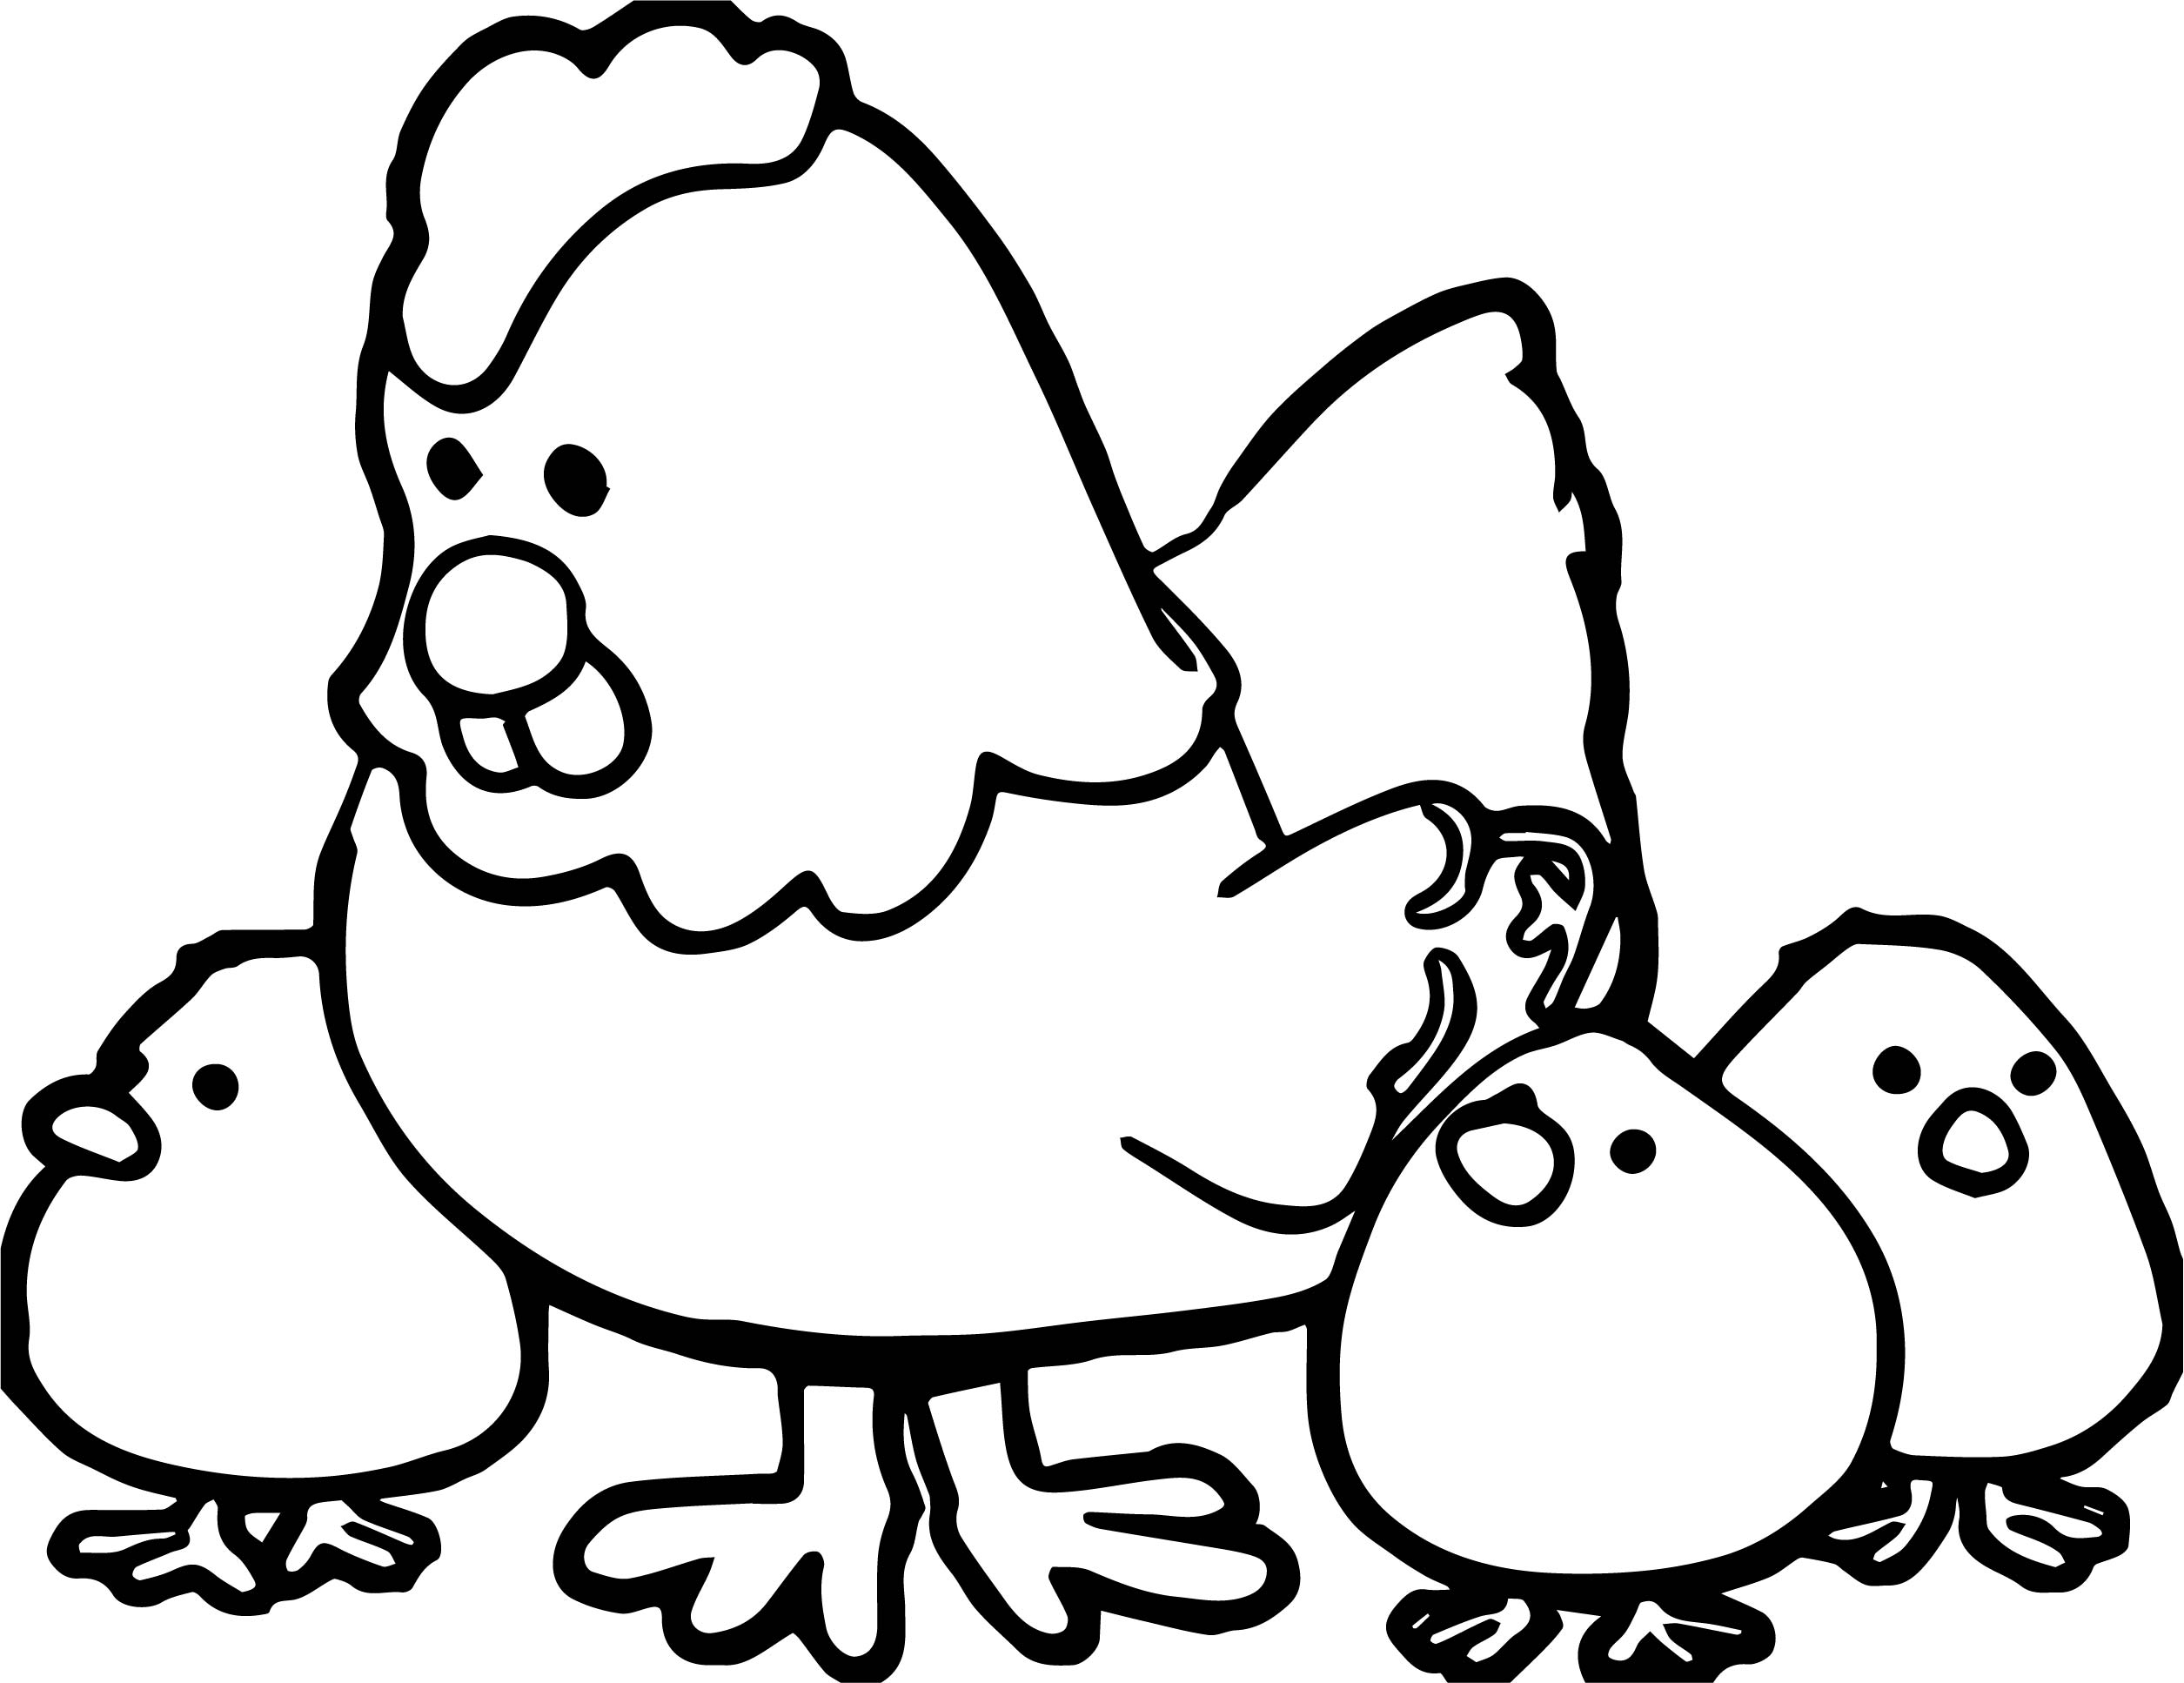 The Hen Coloring Pages With Family Page Wecoloringpage